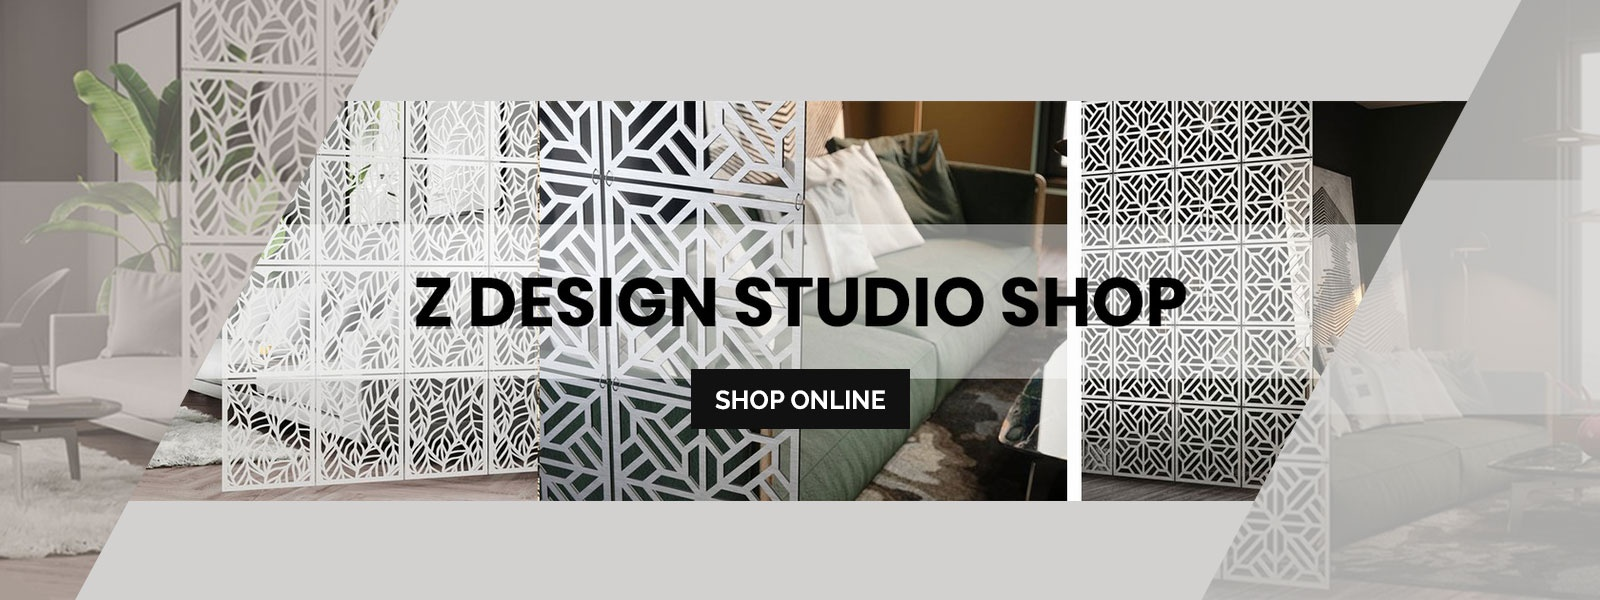 Z Design Studio in Richmond Hill, Ontario